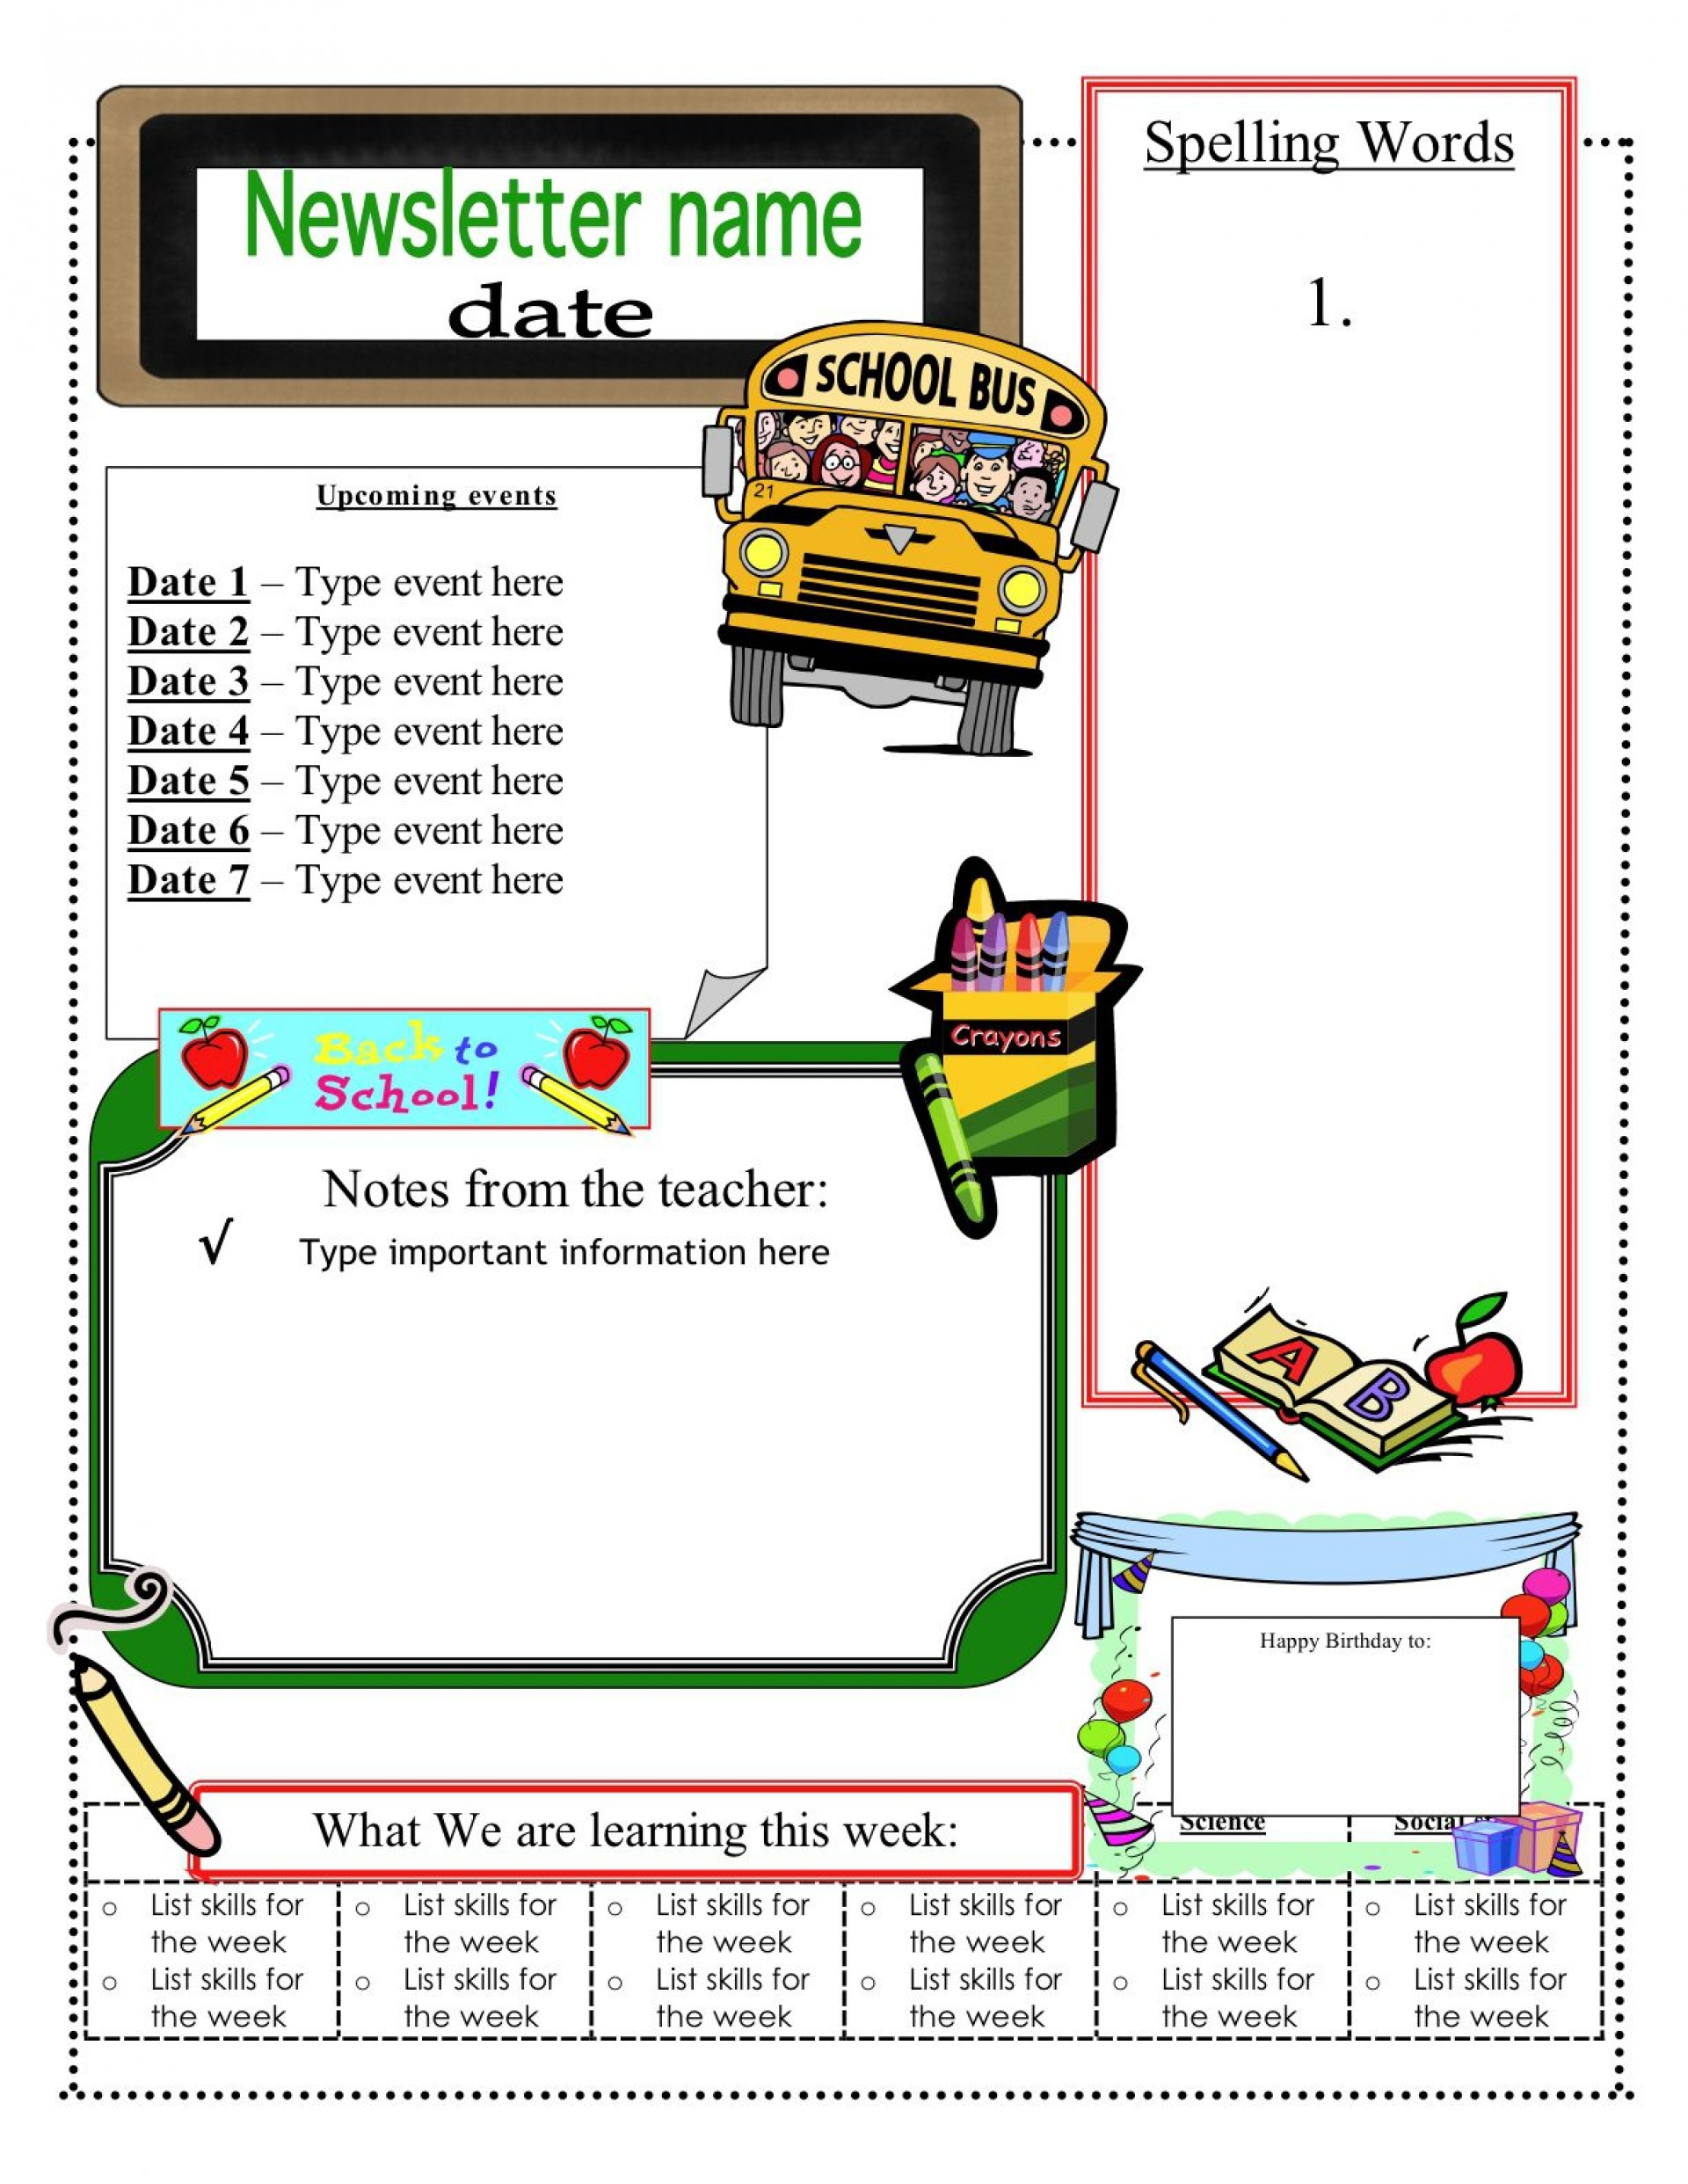 005 Singular Free Editable Daycare Newsletter Template For Word Inspiration  Classroom1920